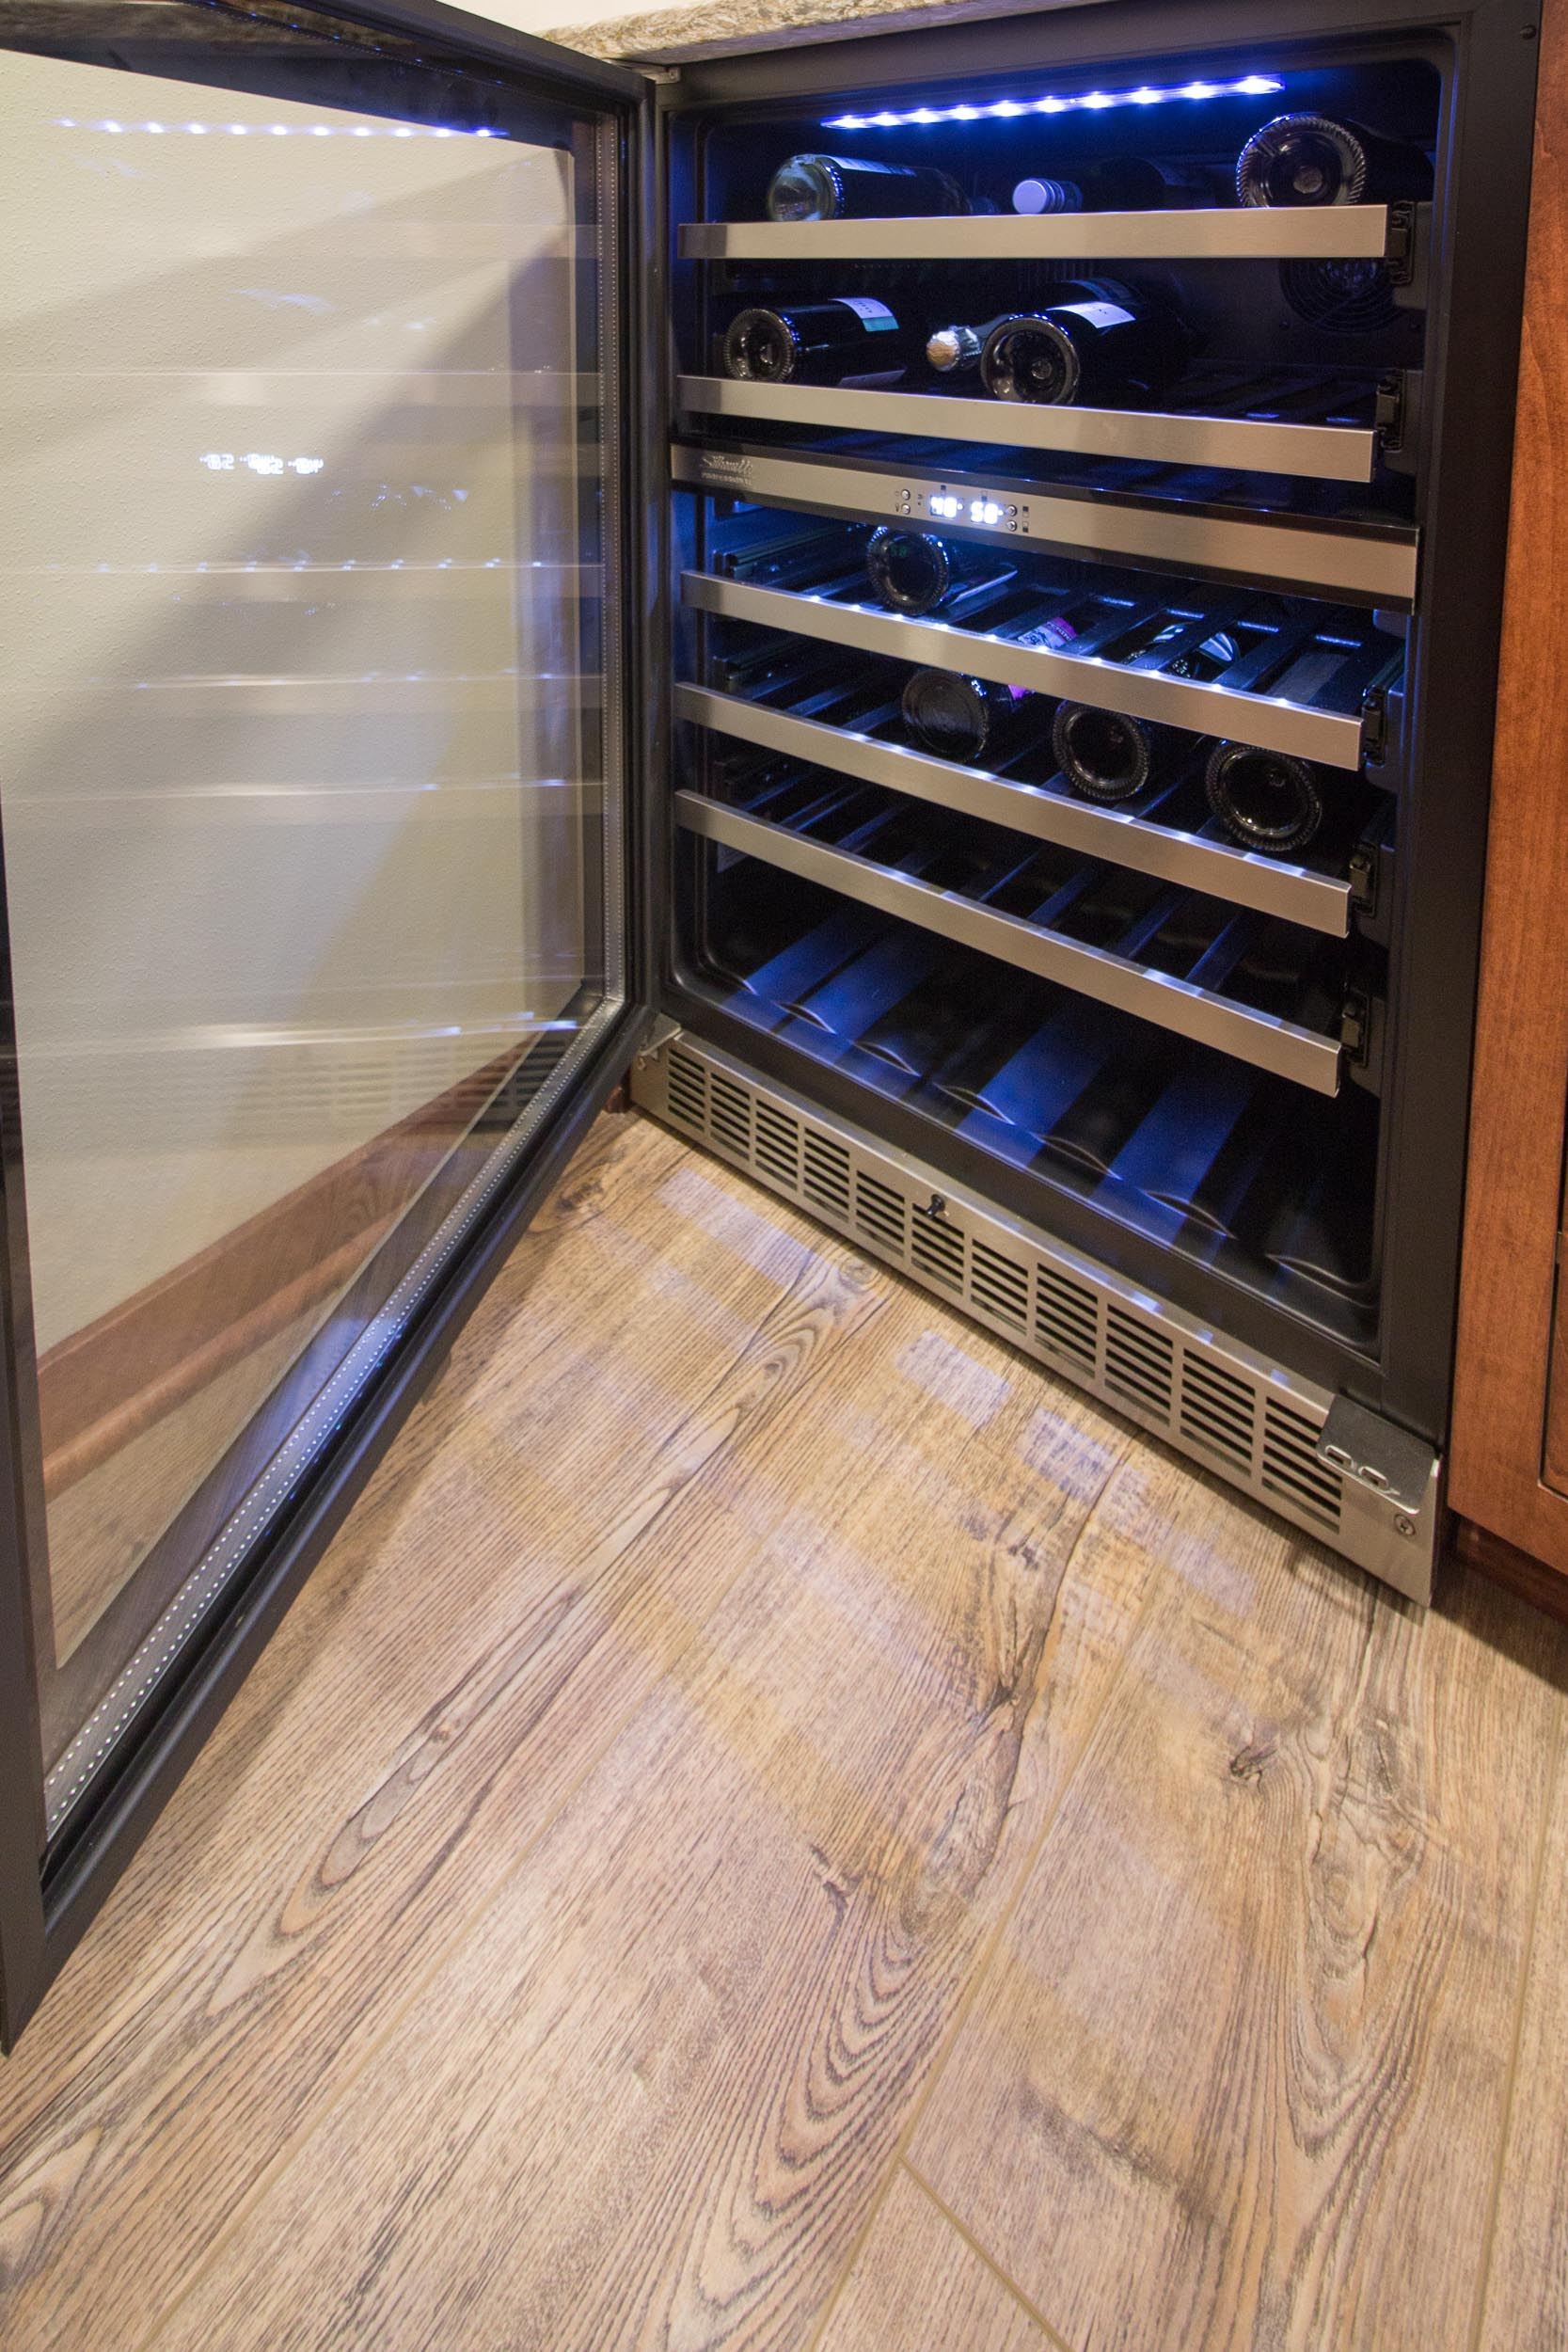 - This under counter wine cooler has different temperature zones for red wine and white wine.